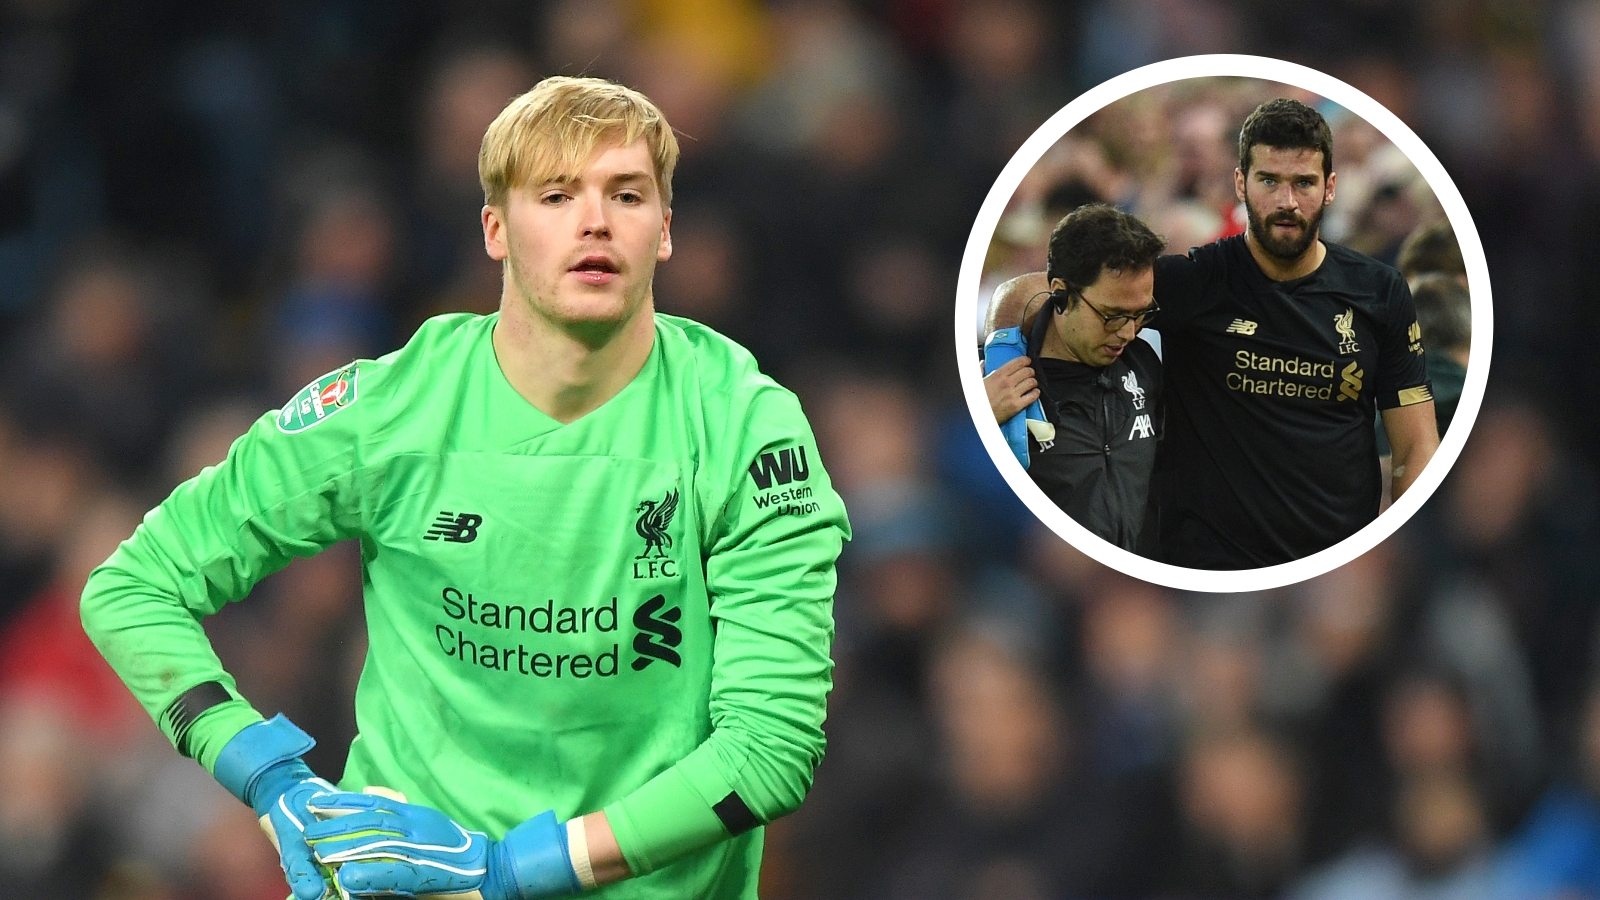 Alisson scuppered Kelleher's plans to leave Liverpool in Eredivisie loan switch, says Republic of Ireland boss Kenny